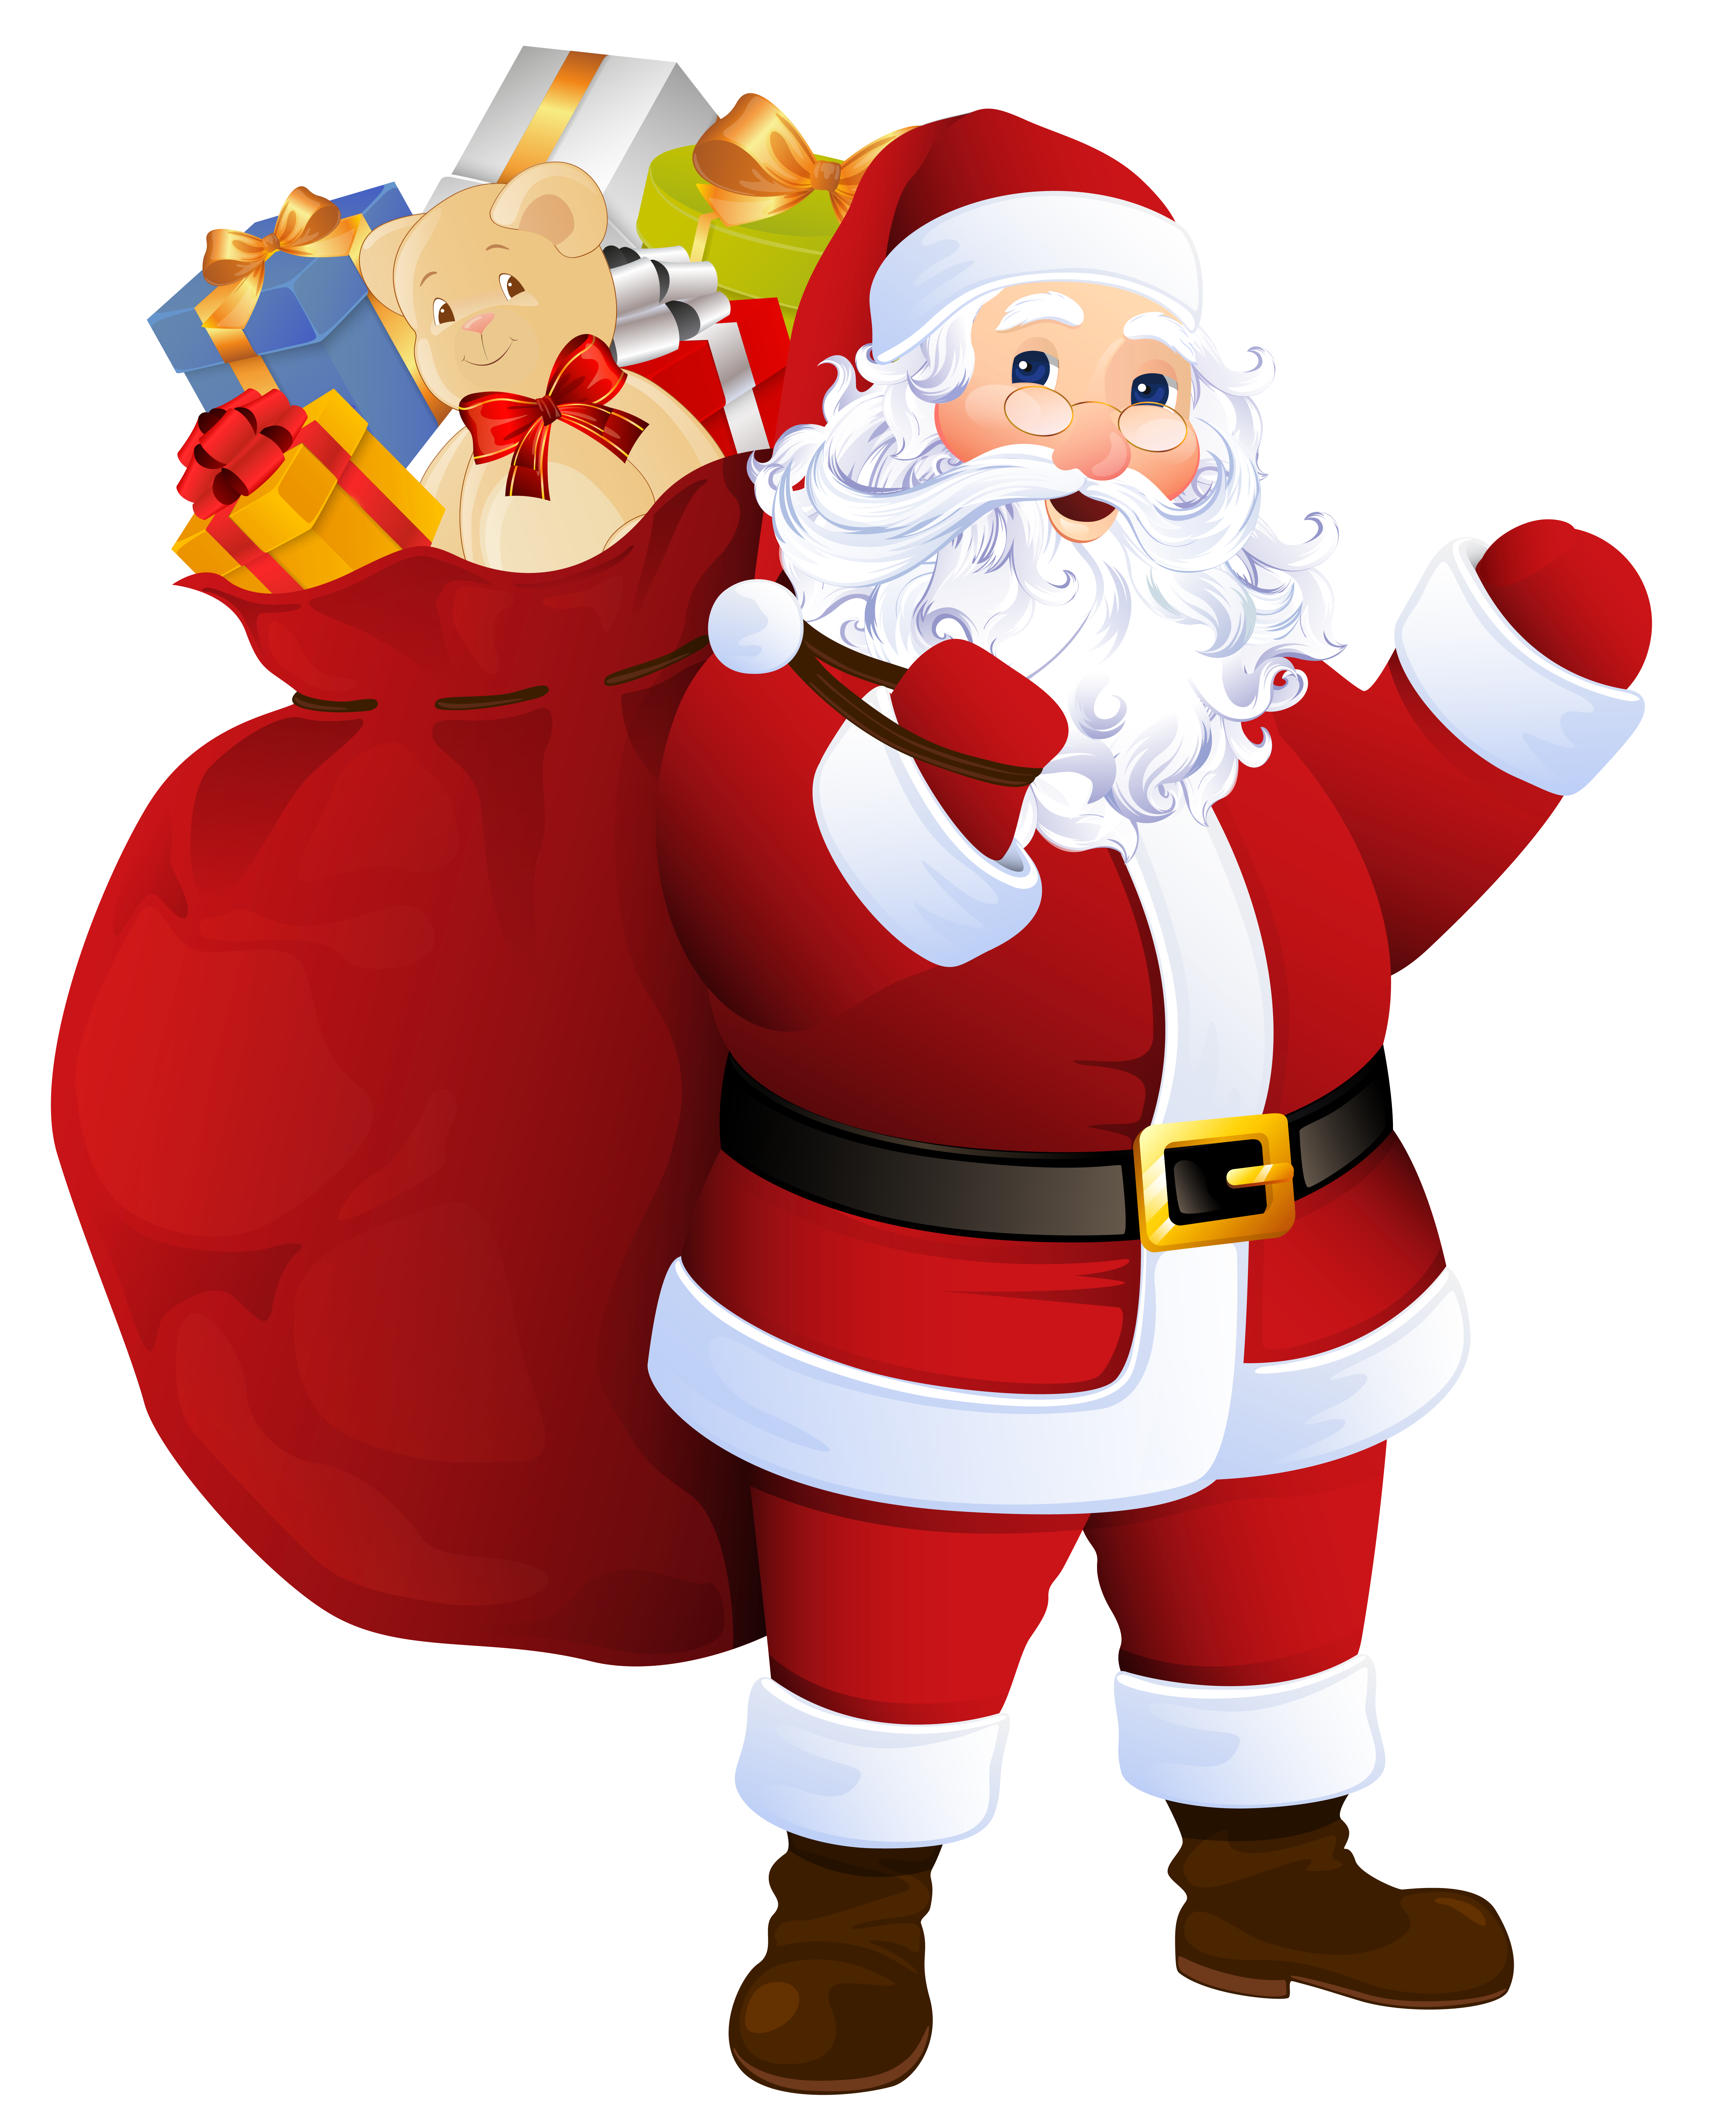 Santa's house clipart vector black and white Transparent Santa Claus with Bag of Gifts | https://gallery ... vector black and white